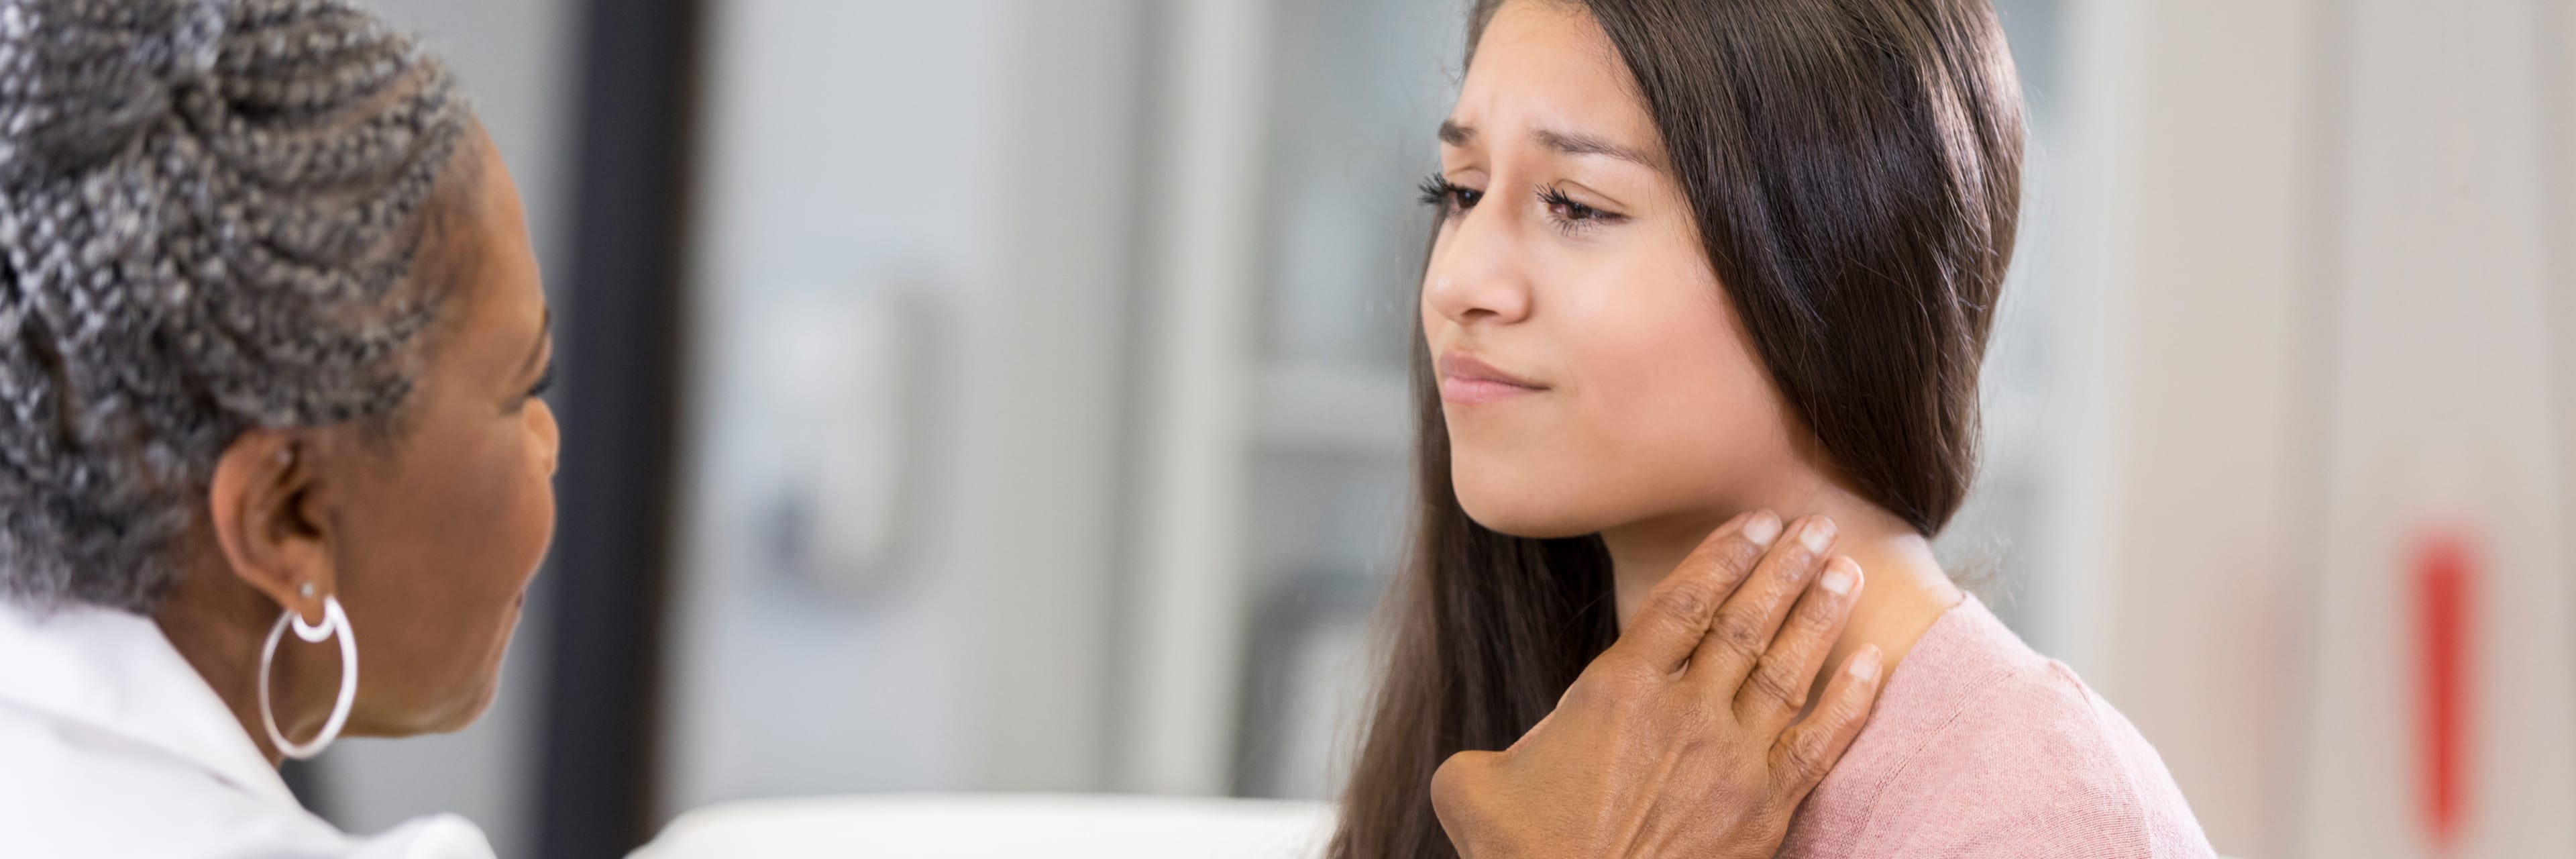 ENT physician checking woman's throat